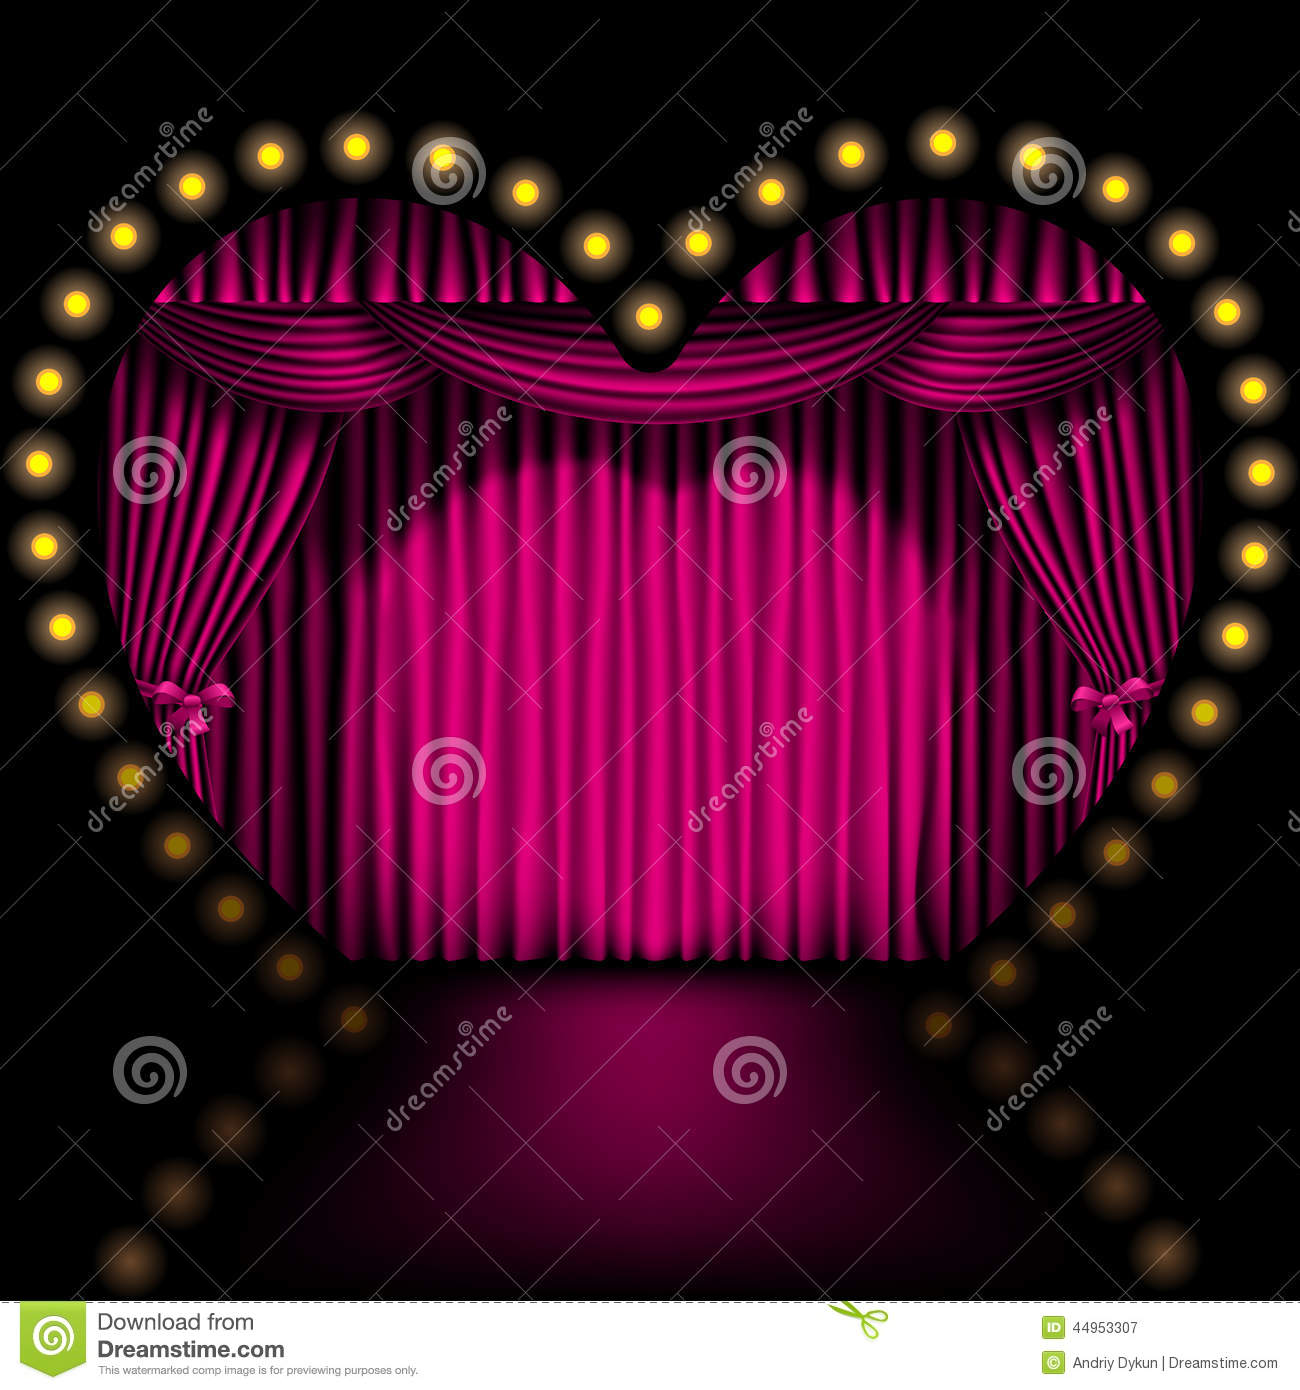 Image Result For Royalty Free Music Romantic